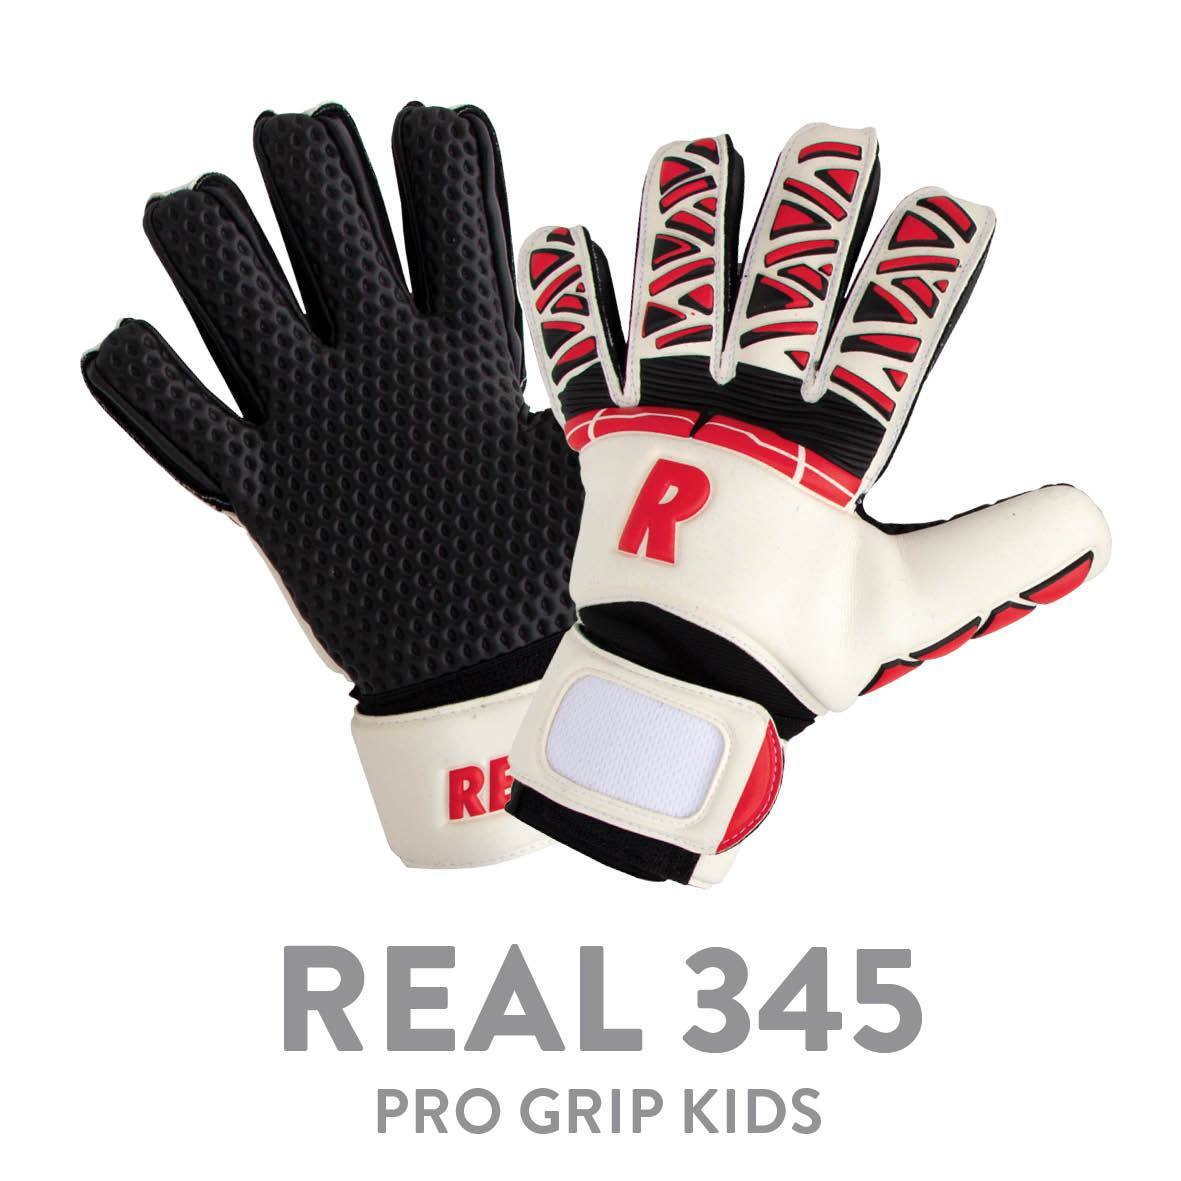 REAL JR 345 PRO GRIP WHITE/RED